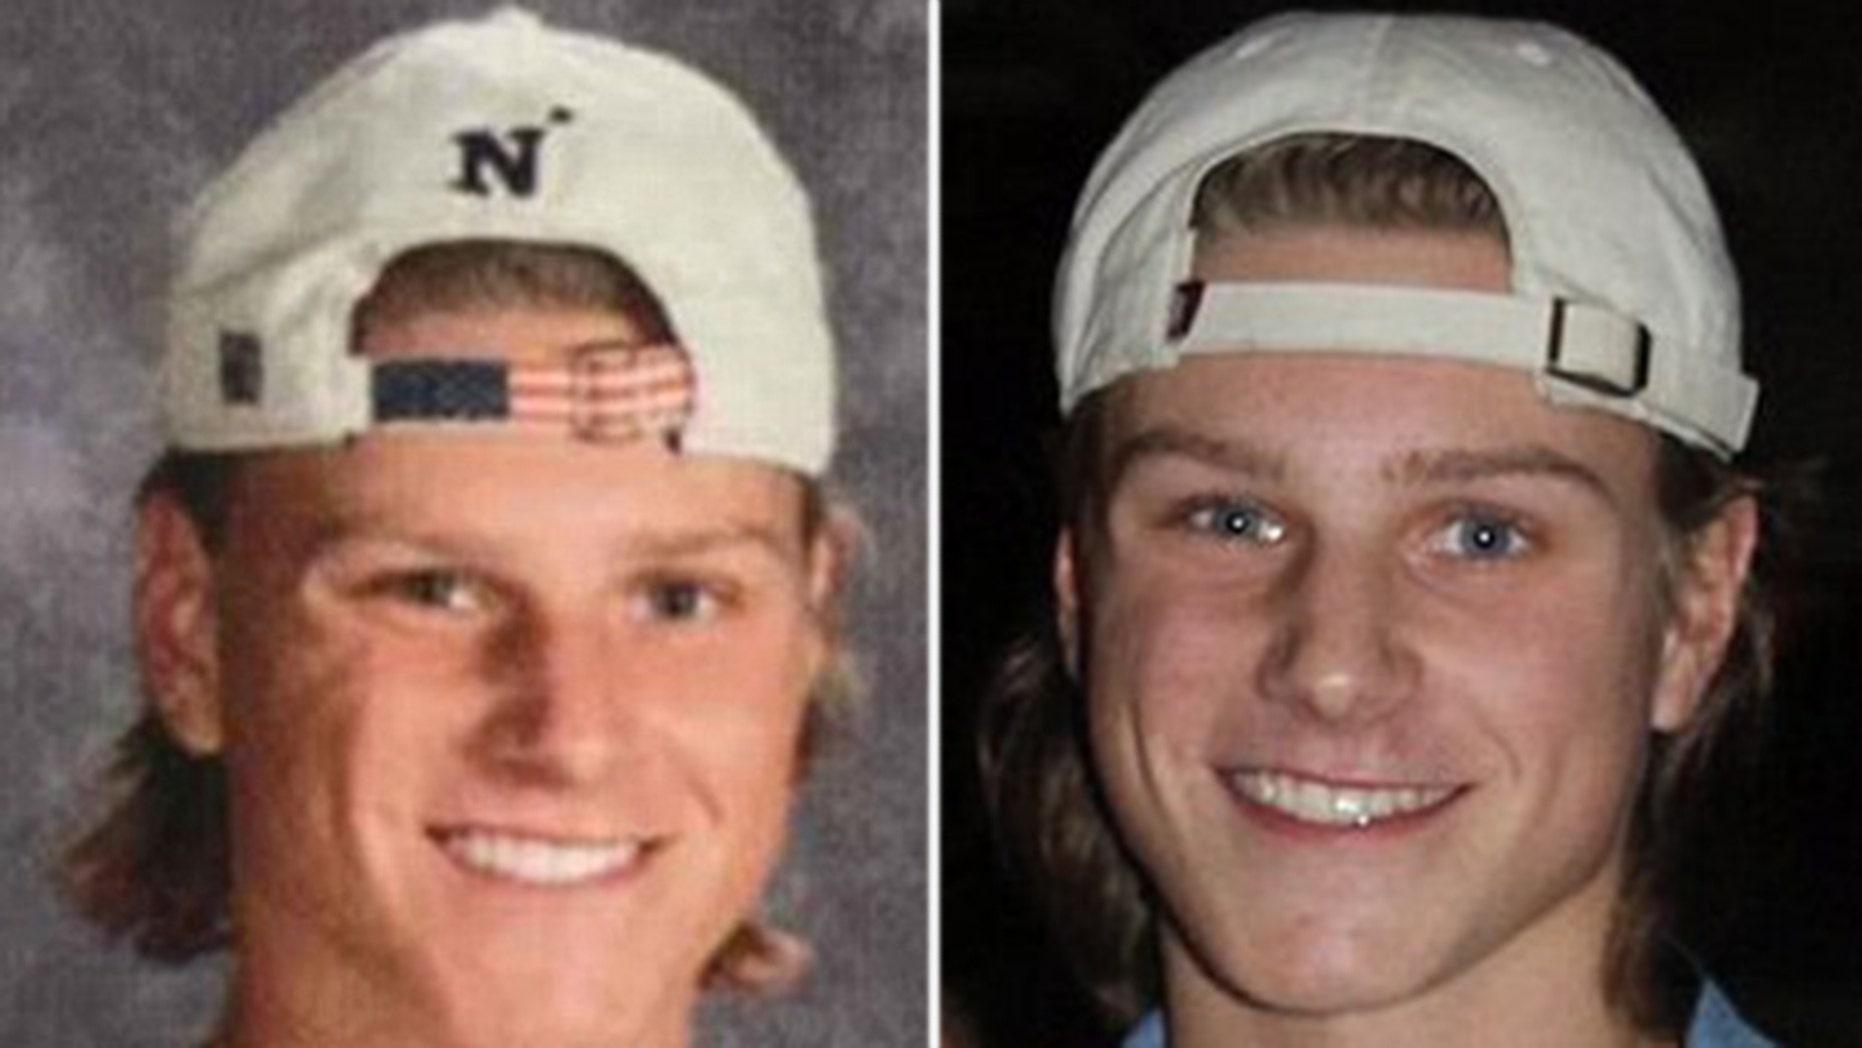 Archer Amorosi, 16, was killed in Chanhassan, Minn., Friday after his mother called deputies to report his son was suicidal and threatening her.